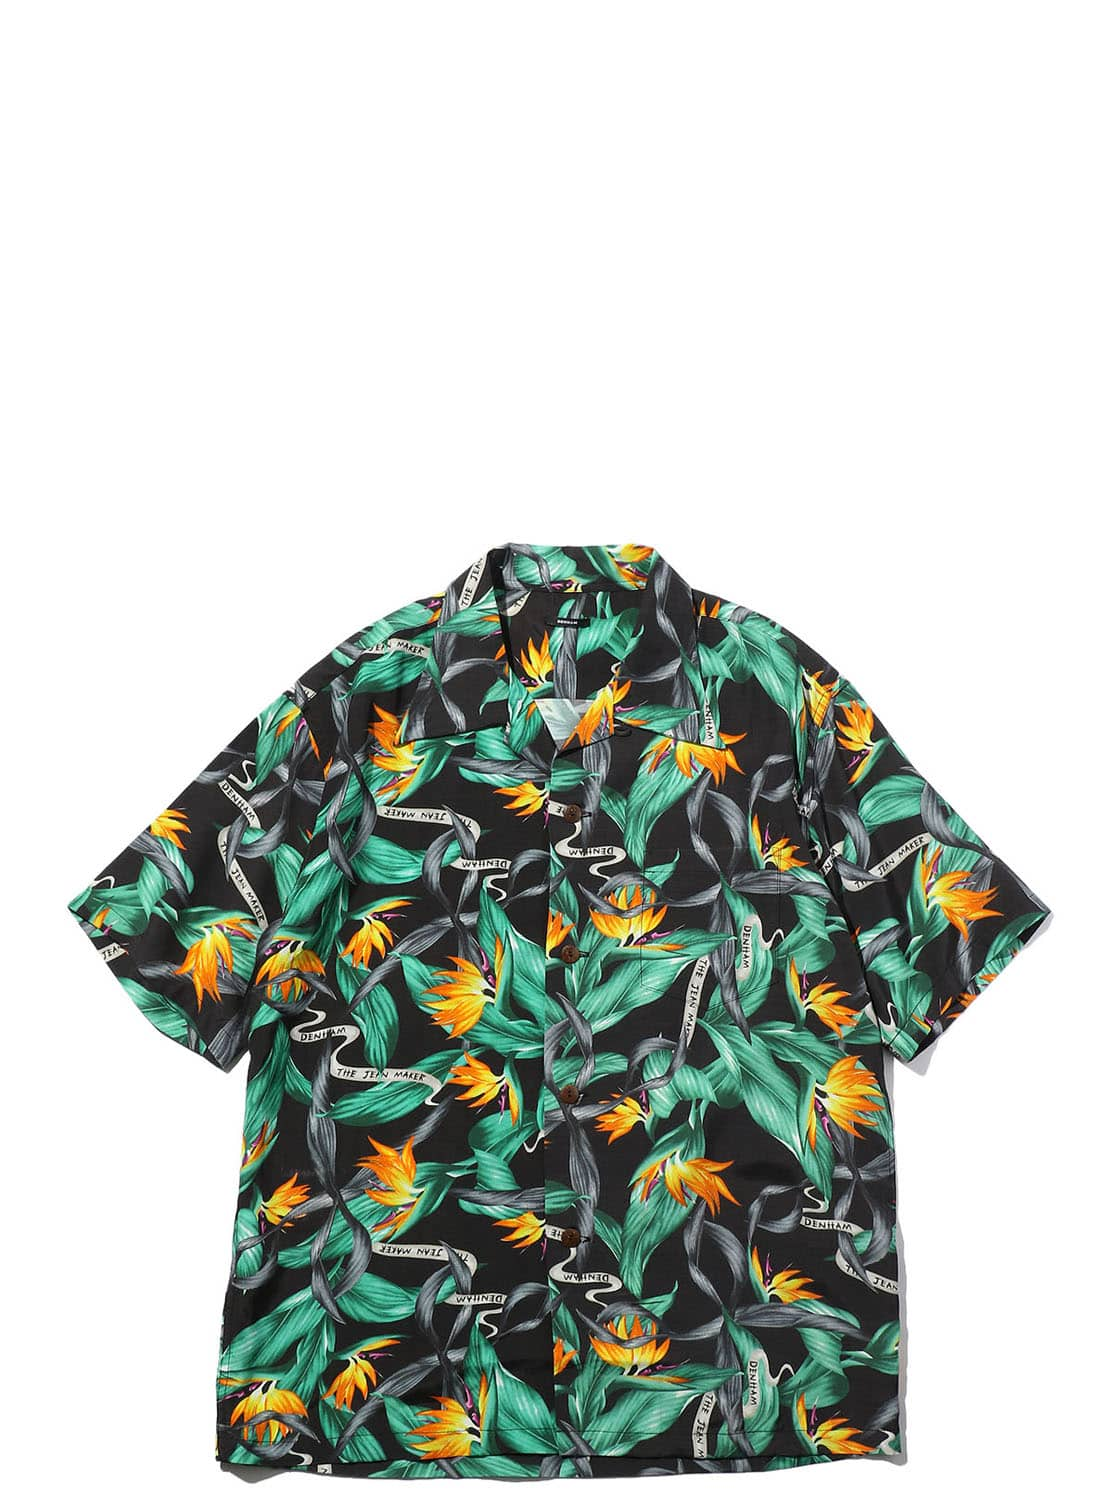 【日本限定】 DENHAM ALOHA SHIRT AS